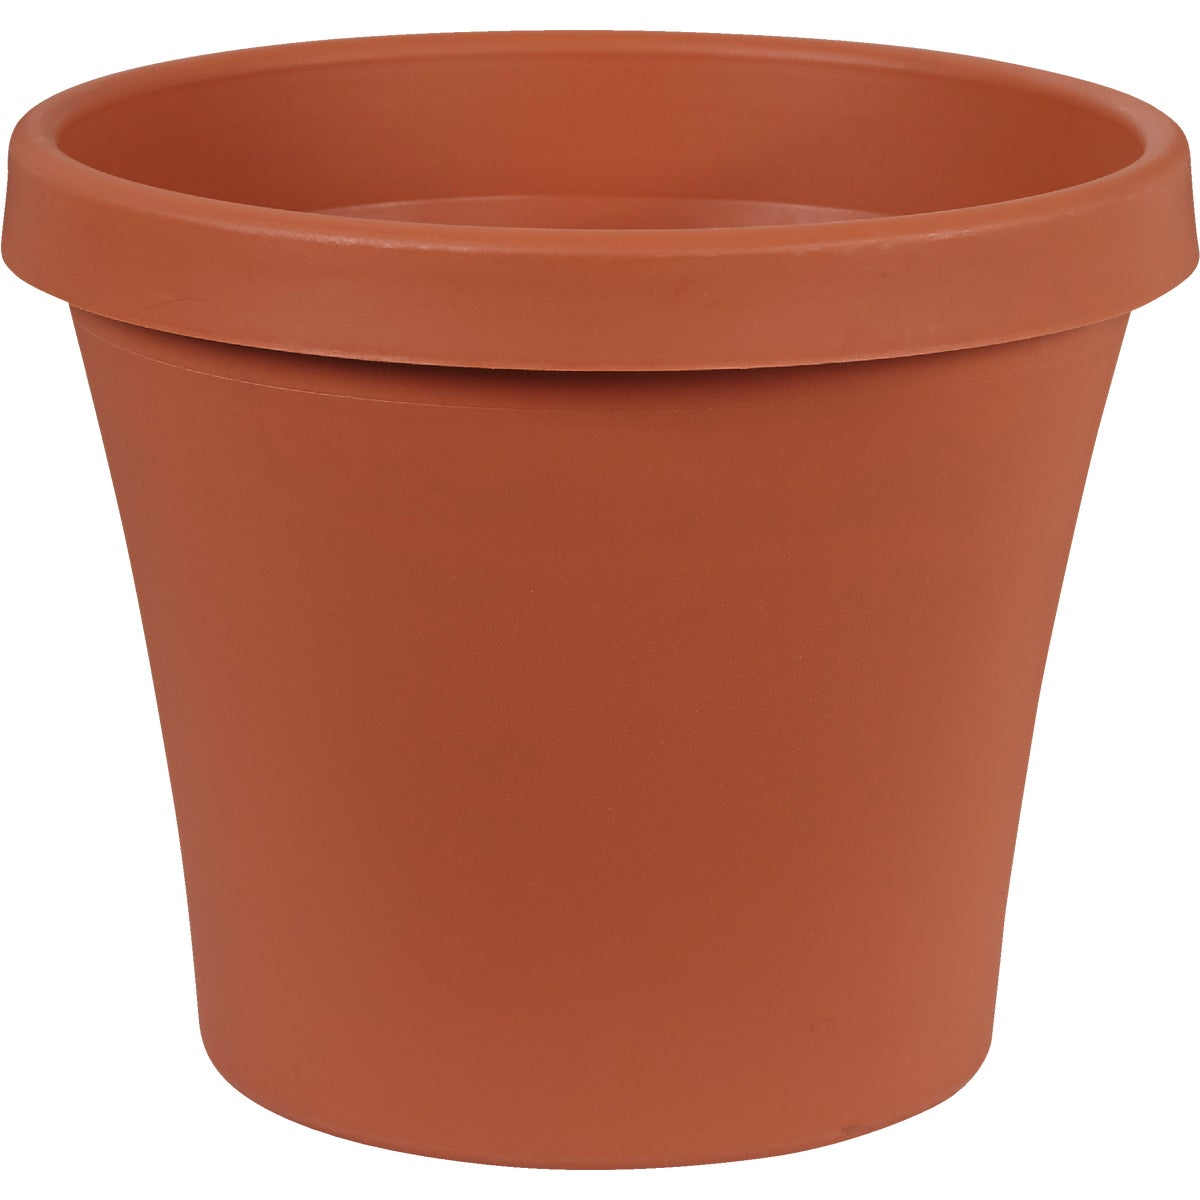 "20"" CLAY POLY POT"